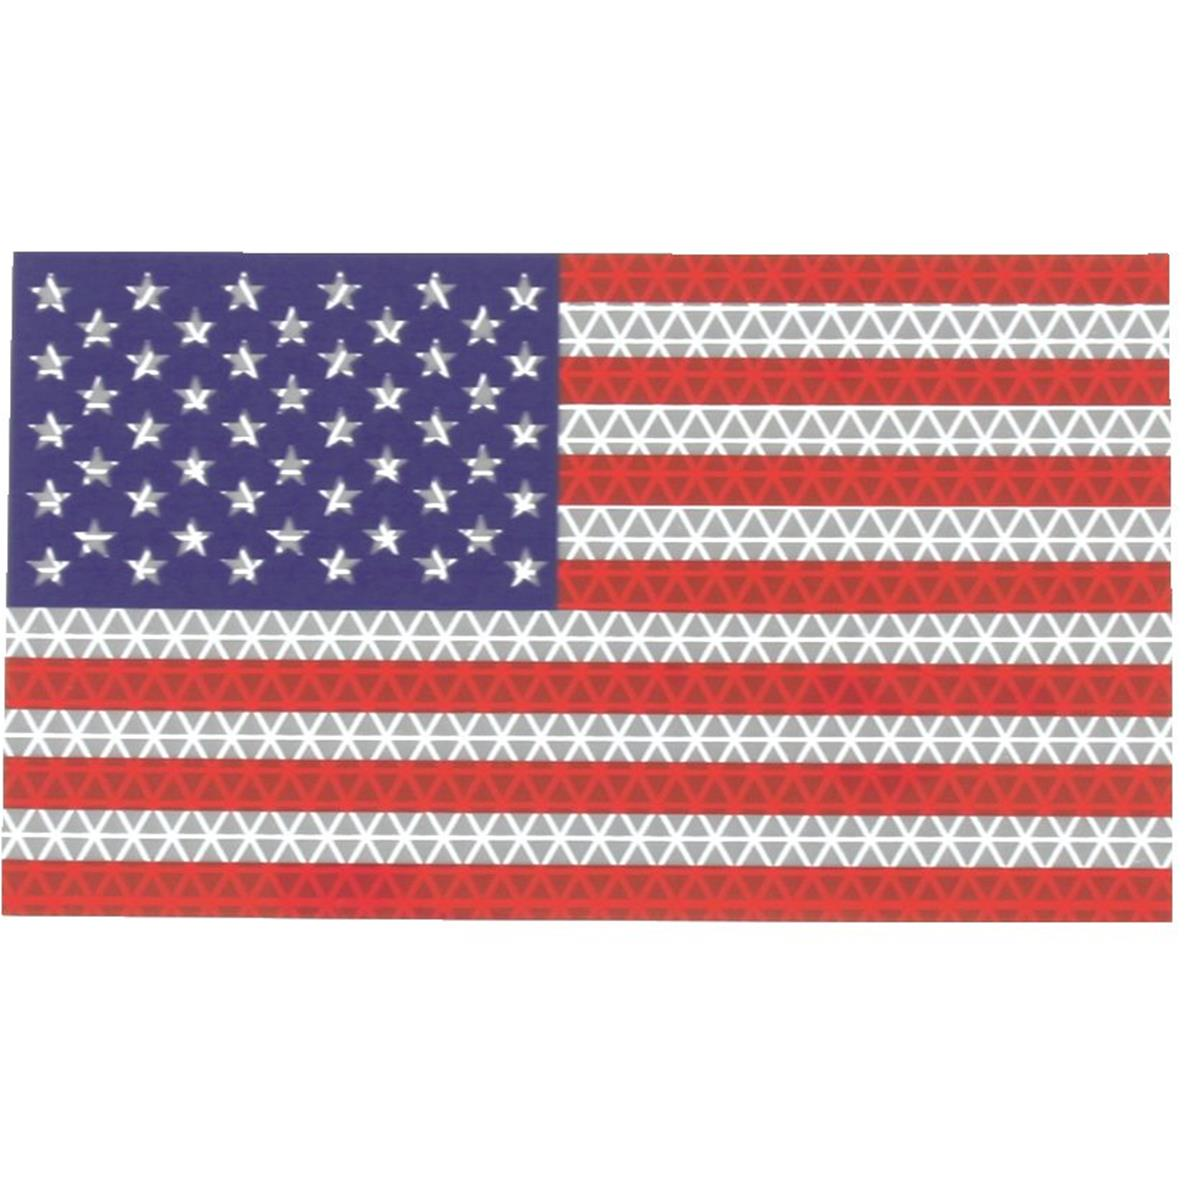 Small Reflective Flag Decal